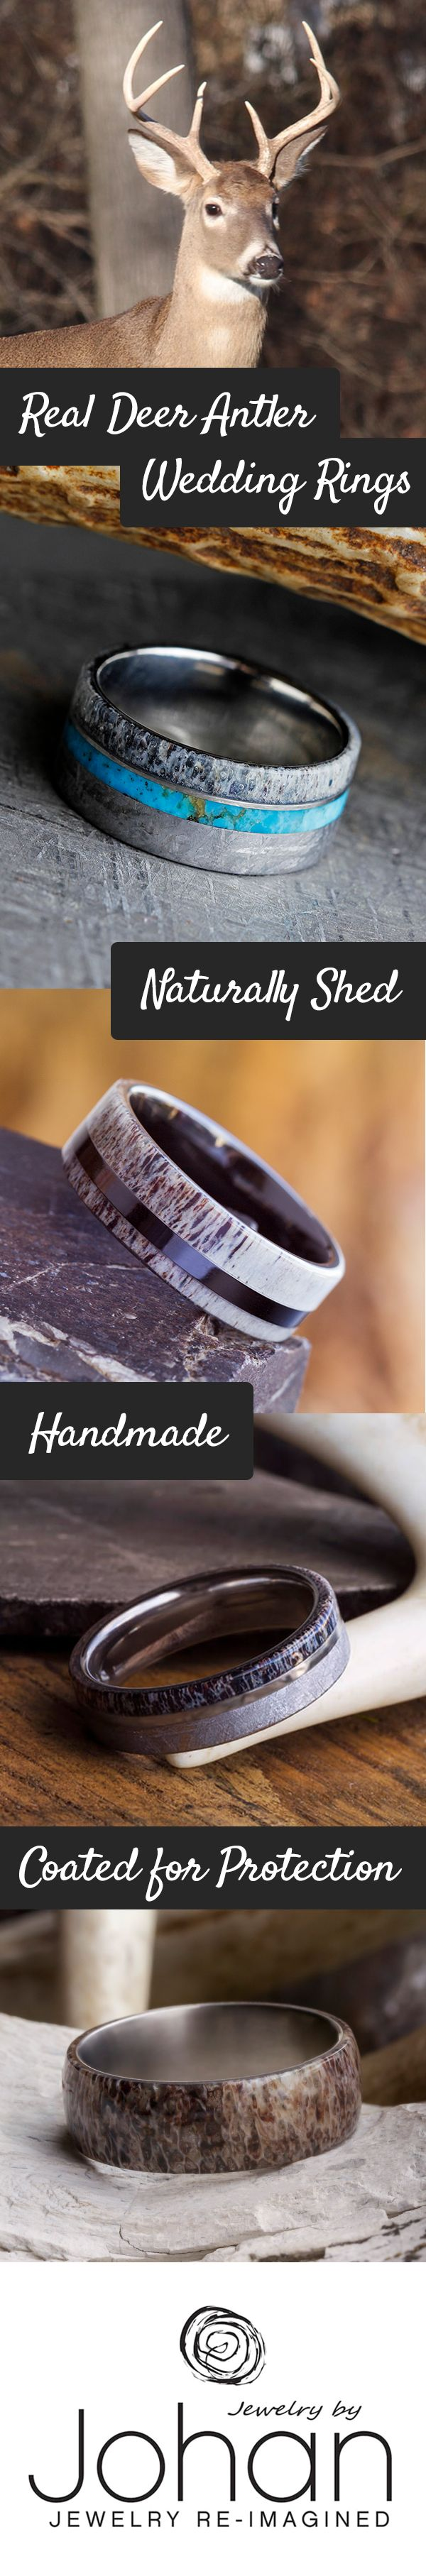 deer antler ring antler wedding band Show off your love of the hunt with a real deer antler wedding ring Send